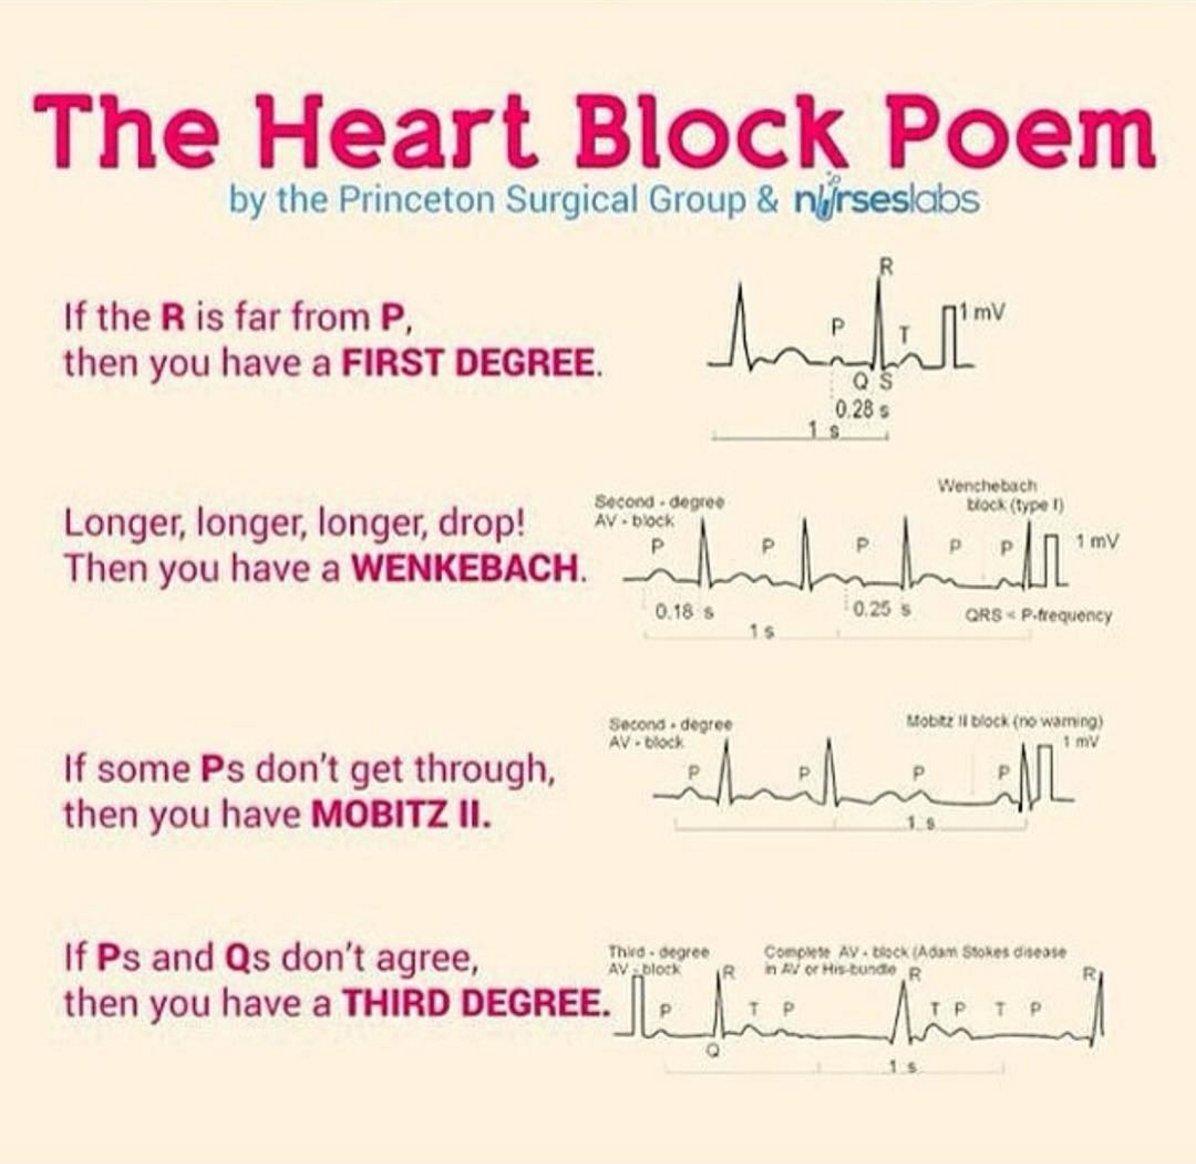 """Medumentary on Twitter: """"Wonderful cardiology poem posted from my girl  @StudentDrDiva - never forget it! #Cardiology #USMLE #EKG #ECG  https://t.co/T19bvDxeQ6"""""""